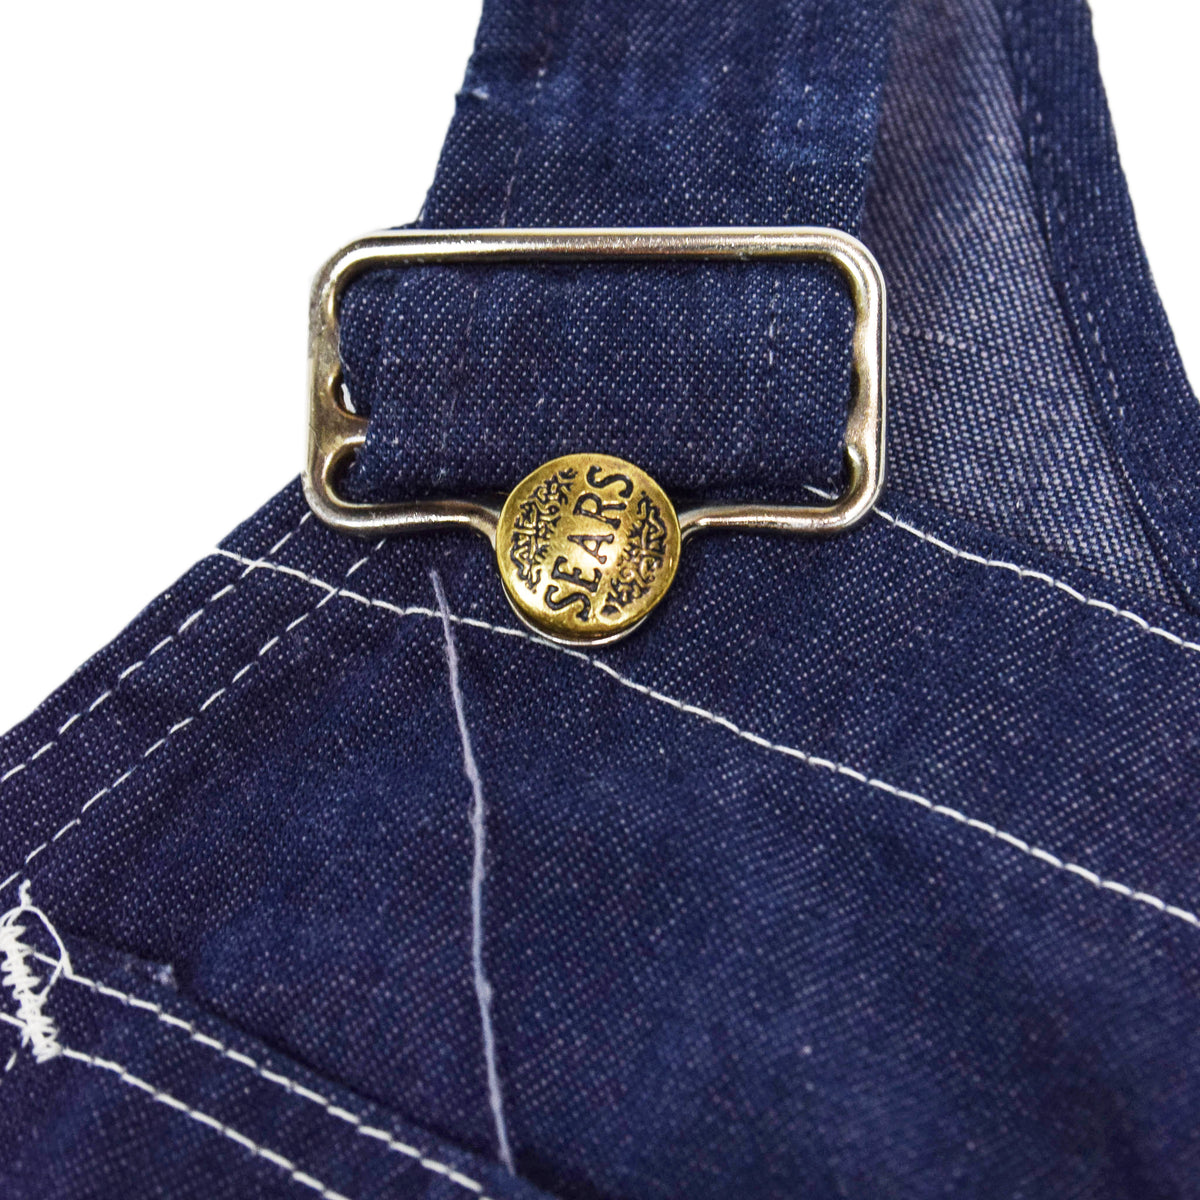 Vintage Sears Union Made USA Workwear Dungarees Blue Denim Overalls XS BUCKLE